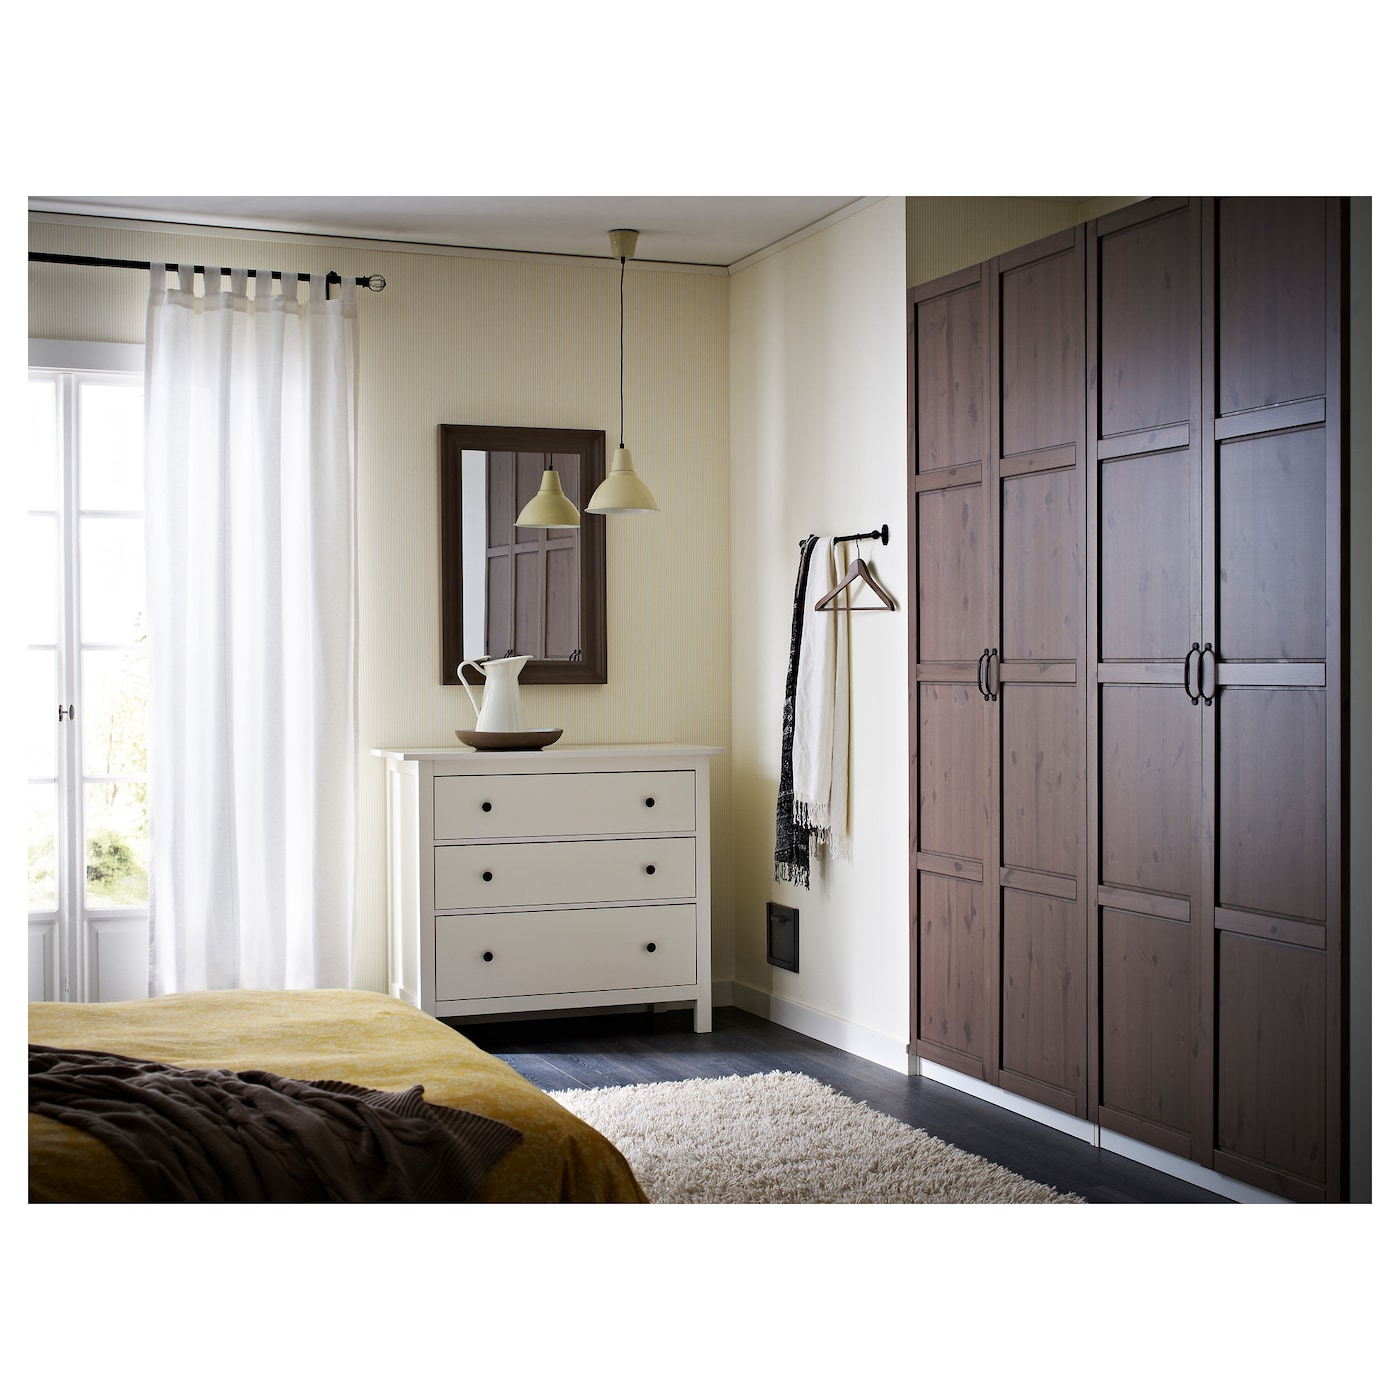 Charmant IKEA HEMNES Mirror Provided With Safety Film   Reduces Damage If Glass Is  Broken.